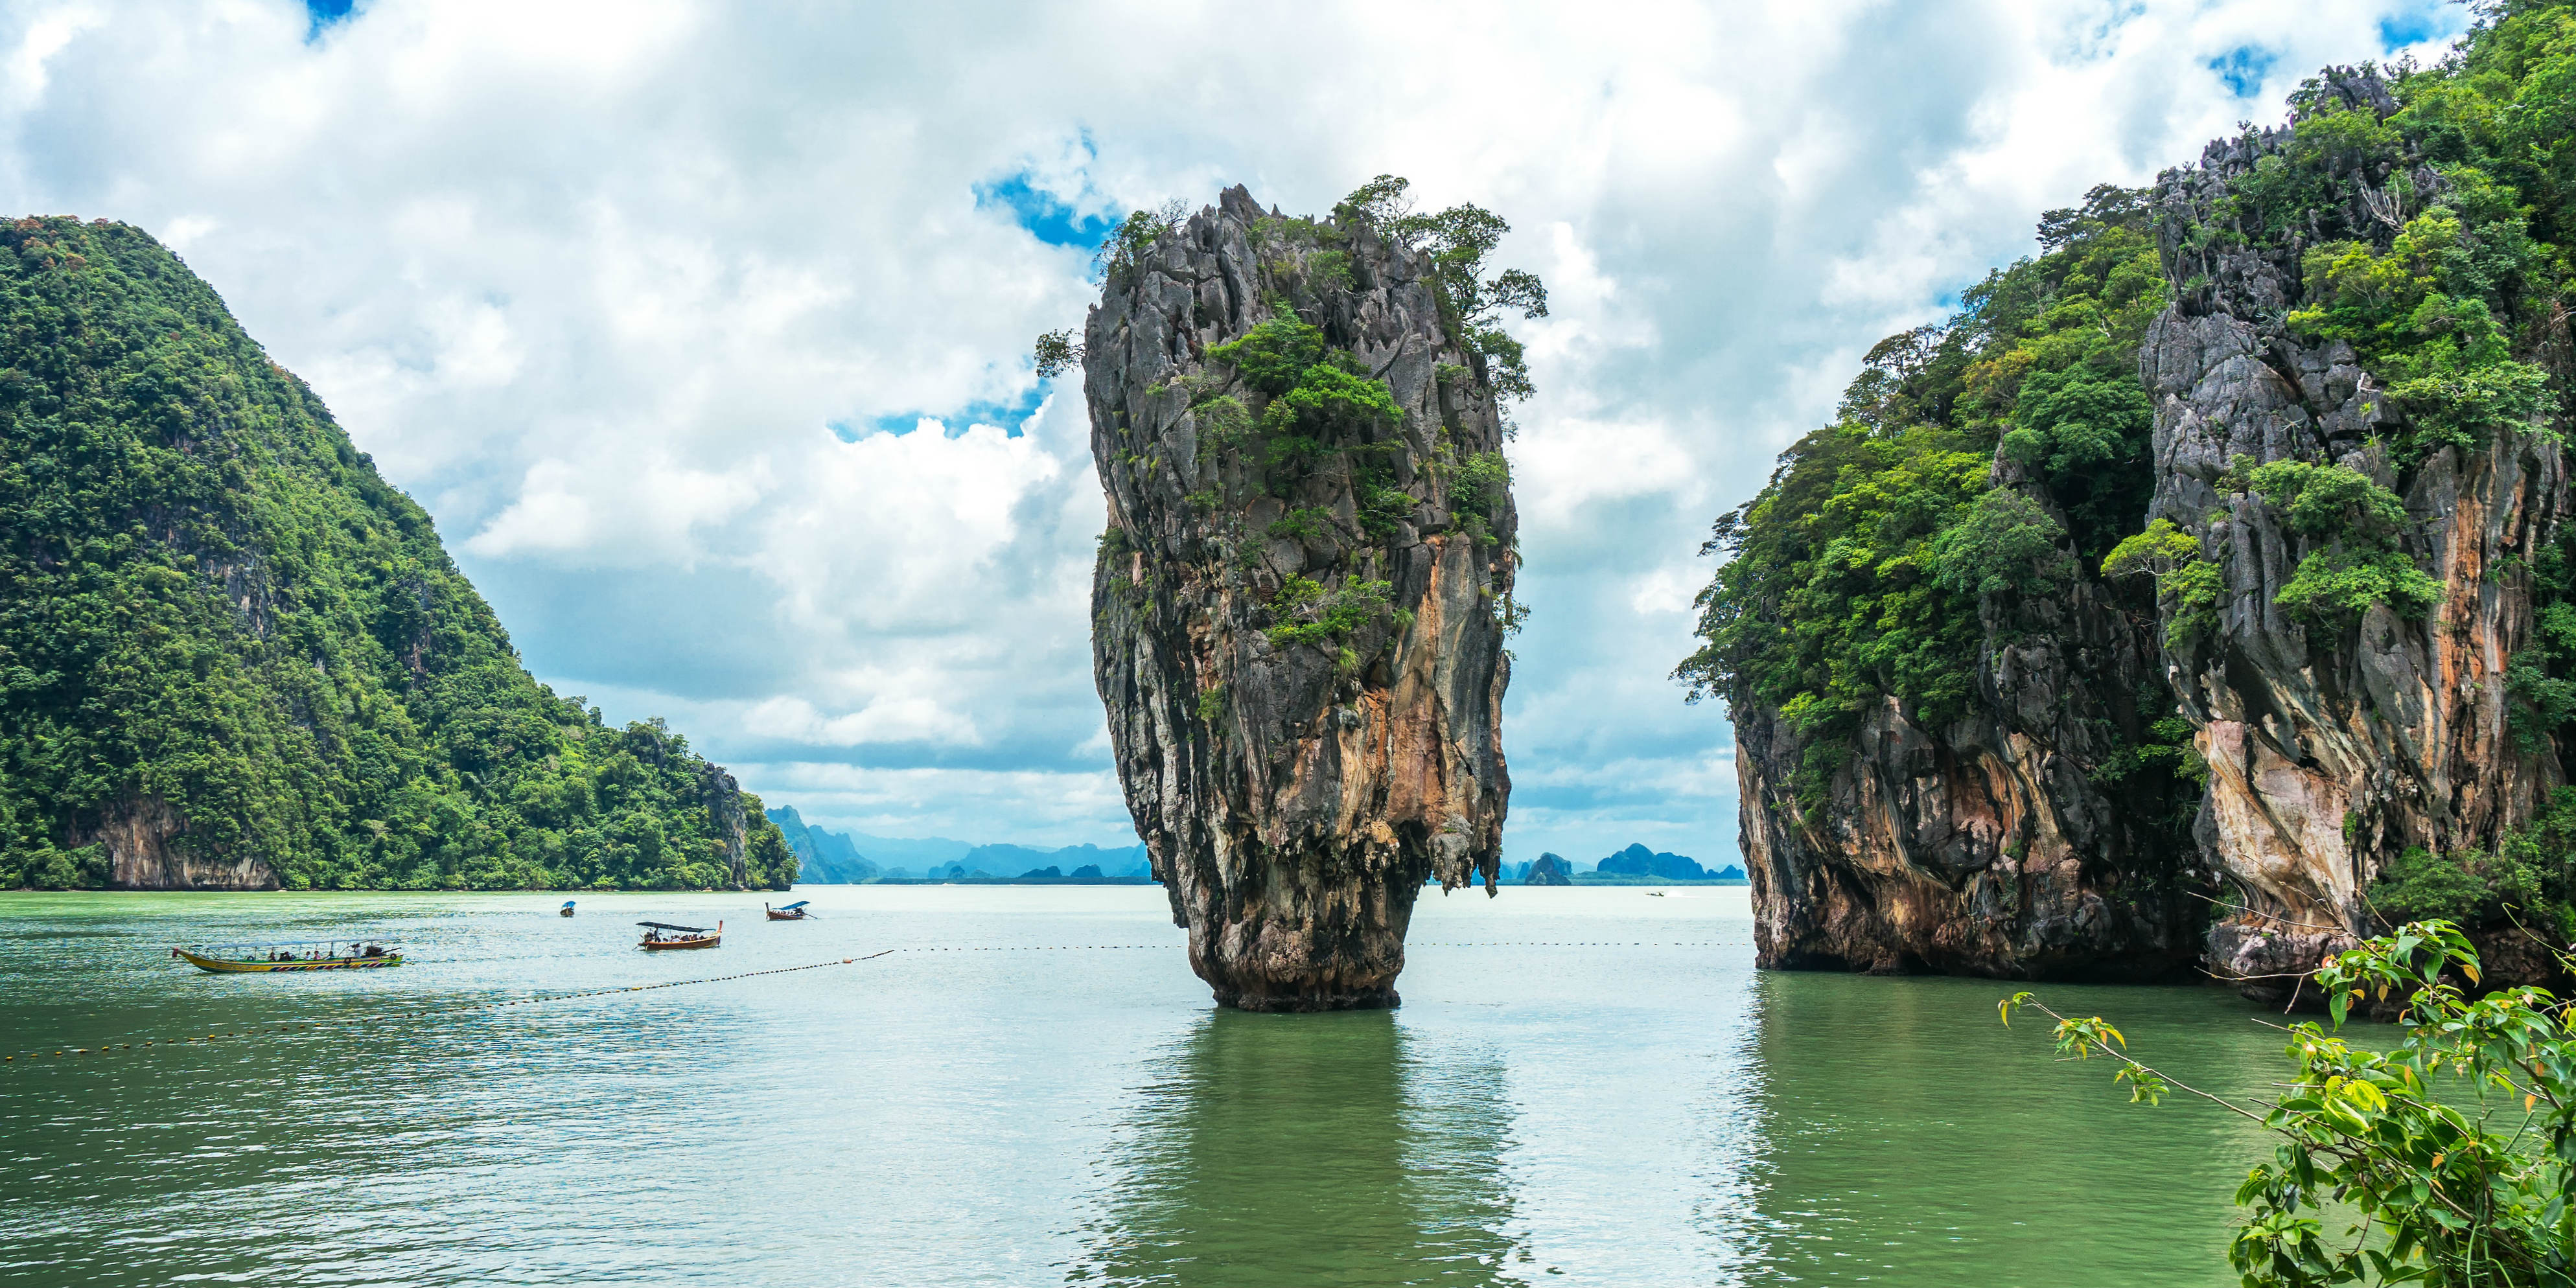 Boat trips around Phang Nga bay, Thailand, include amazing views and the James Bond Island shown here.